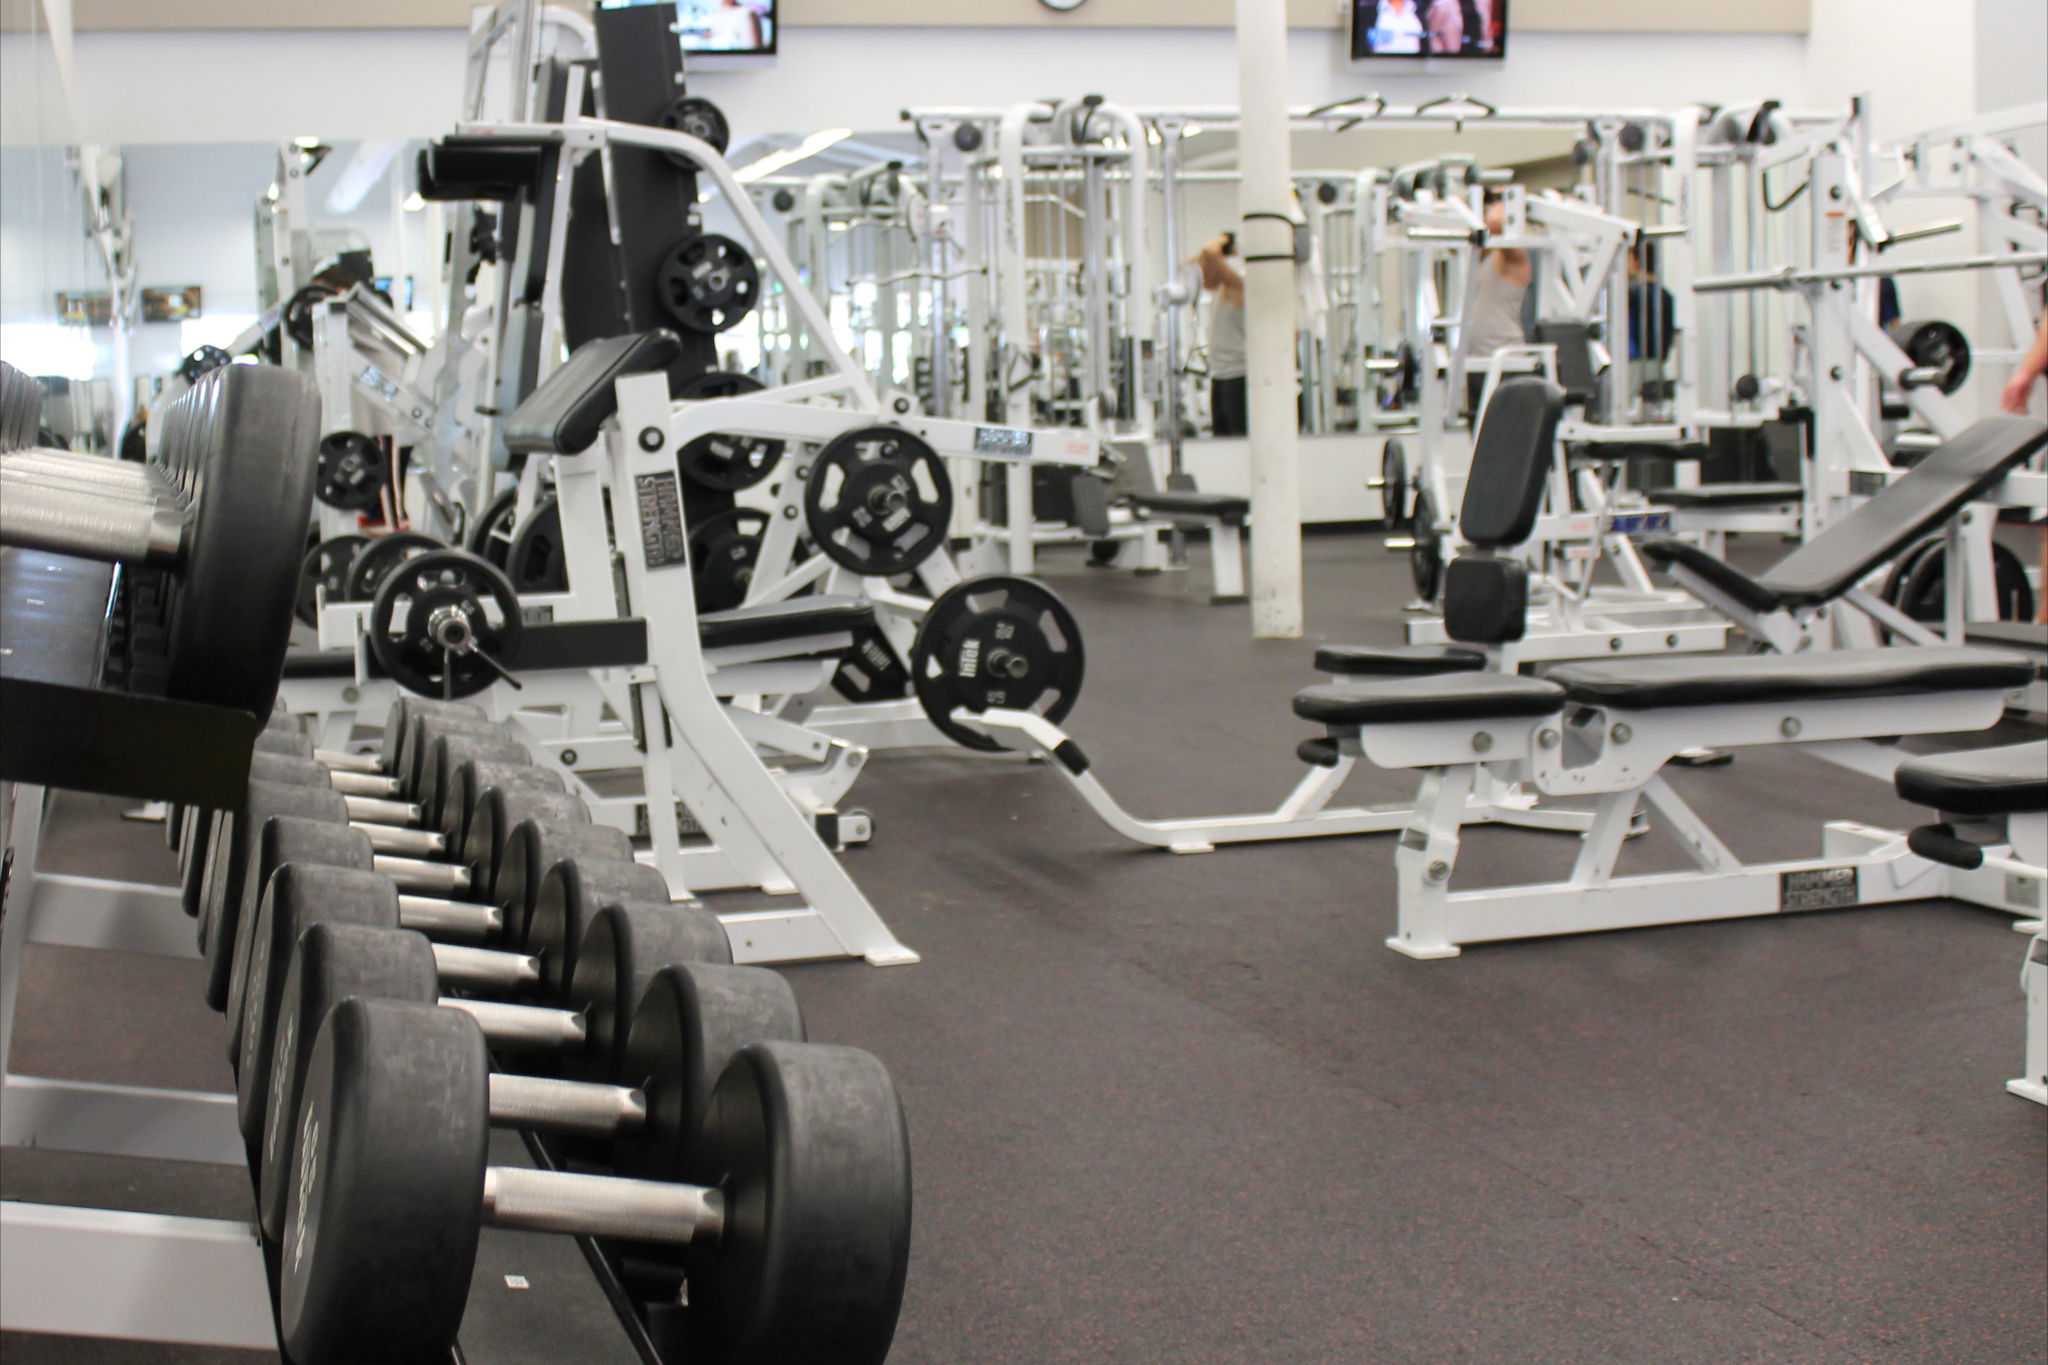 Tips to Overcoming Fears of the Gym